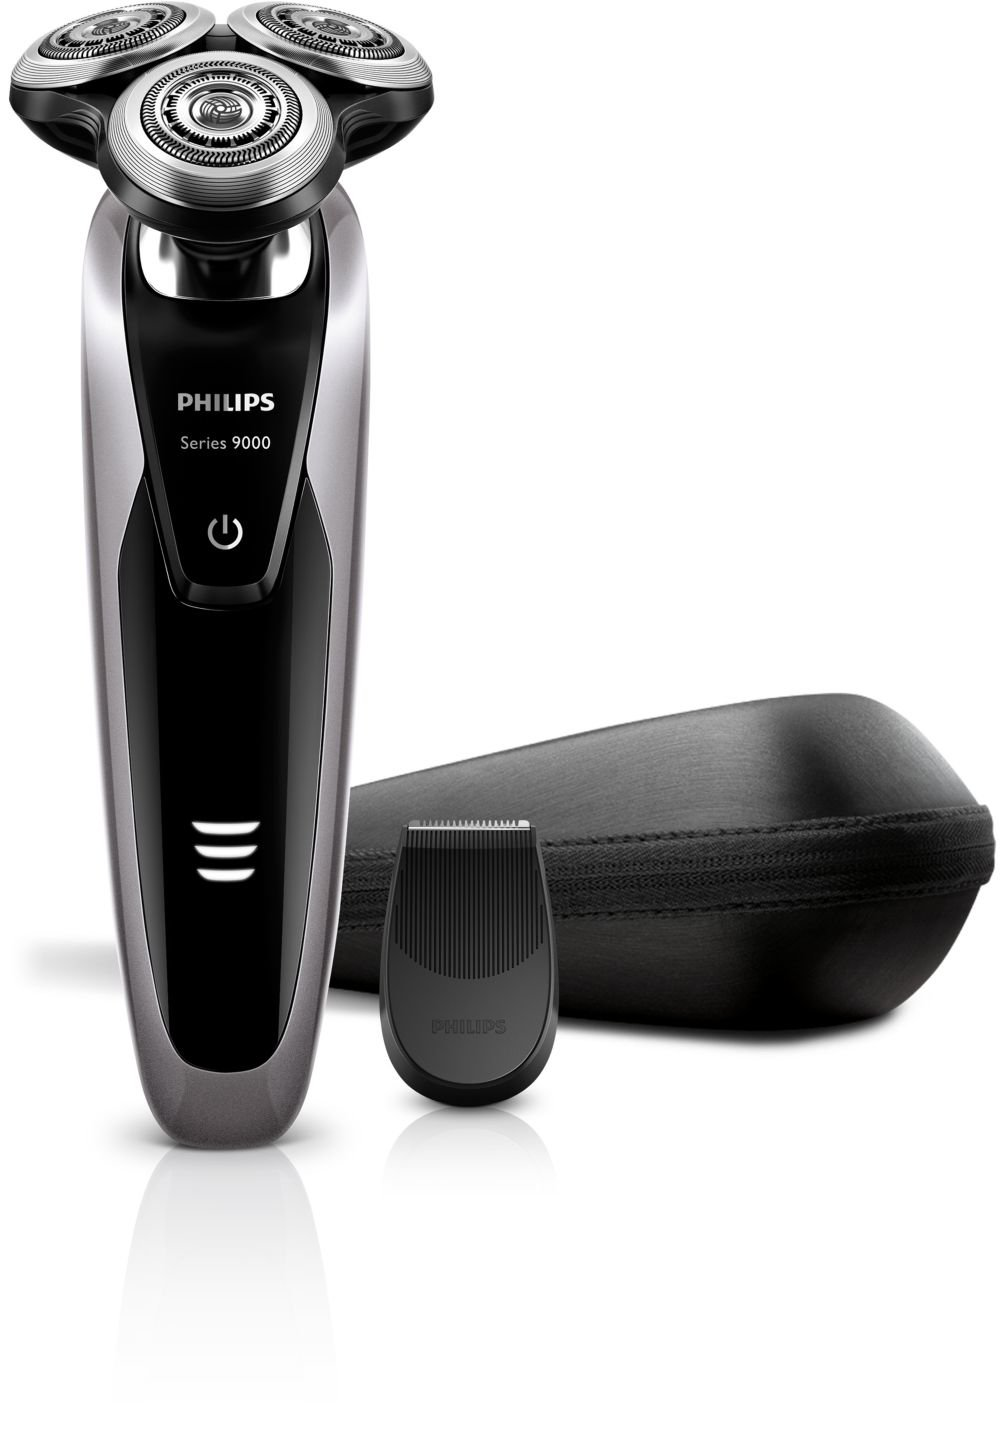 10c88cd33 Philips S9111 S9111/12 Series 9000 Face Wet and Dry Electric Shaver with  Detail Trimmer (100-240V)